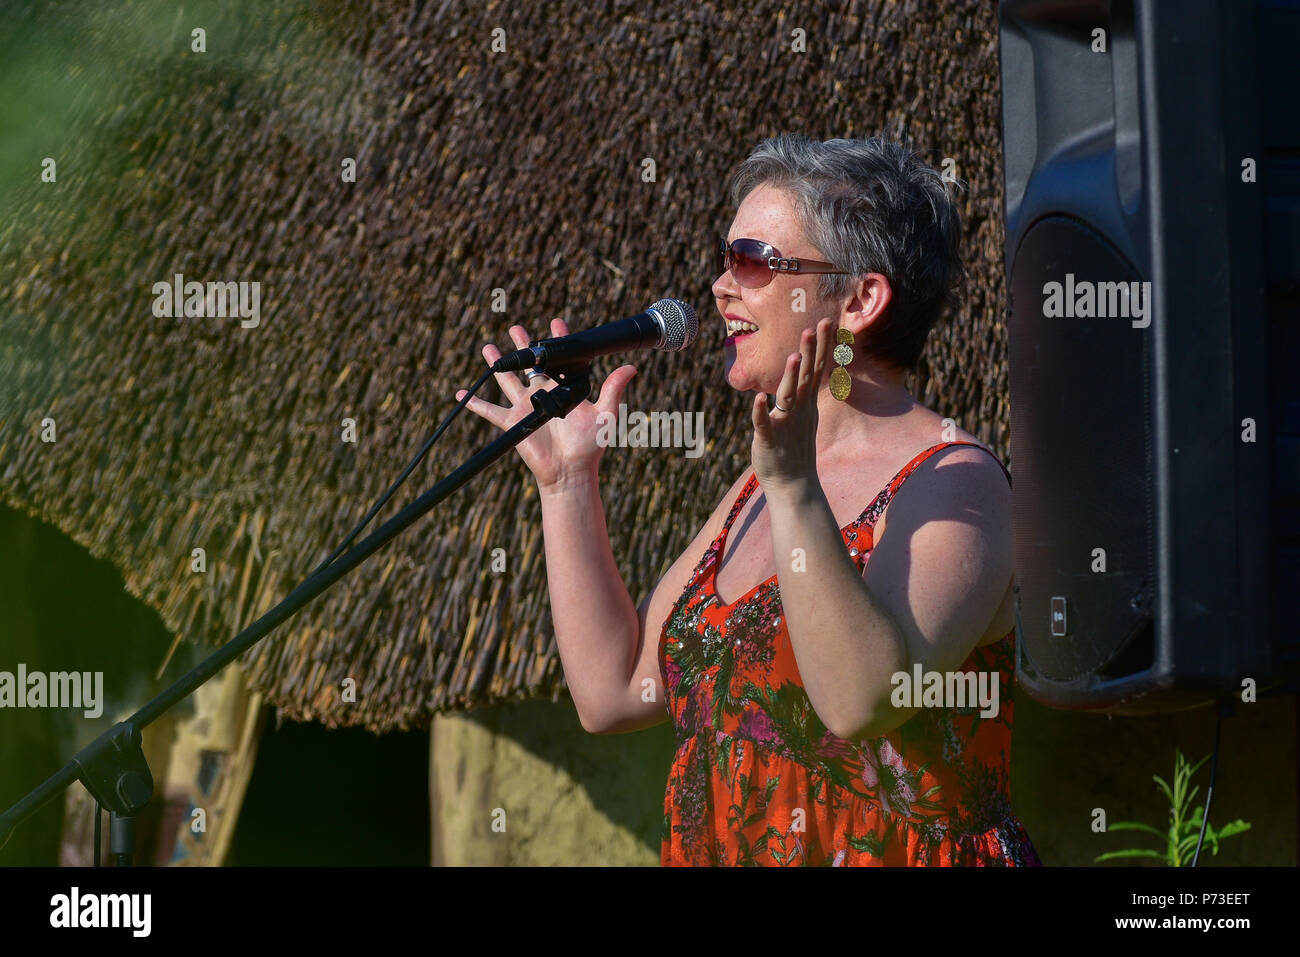 County Tyrone, UK. 4th July, 2018. Poet and Activist Michelle Dennehy recites one of her poems to gathered members of  Activists groups and community members fighting against the proposed destruction of the Sperrin Mountains in County Tyrone. County Tyrone: UK:4th July 2018 Credit: Mark Winter/Alamy Live News - Stock Image